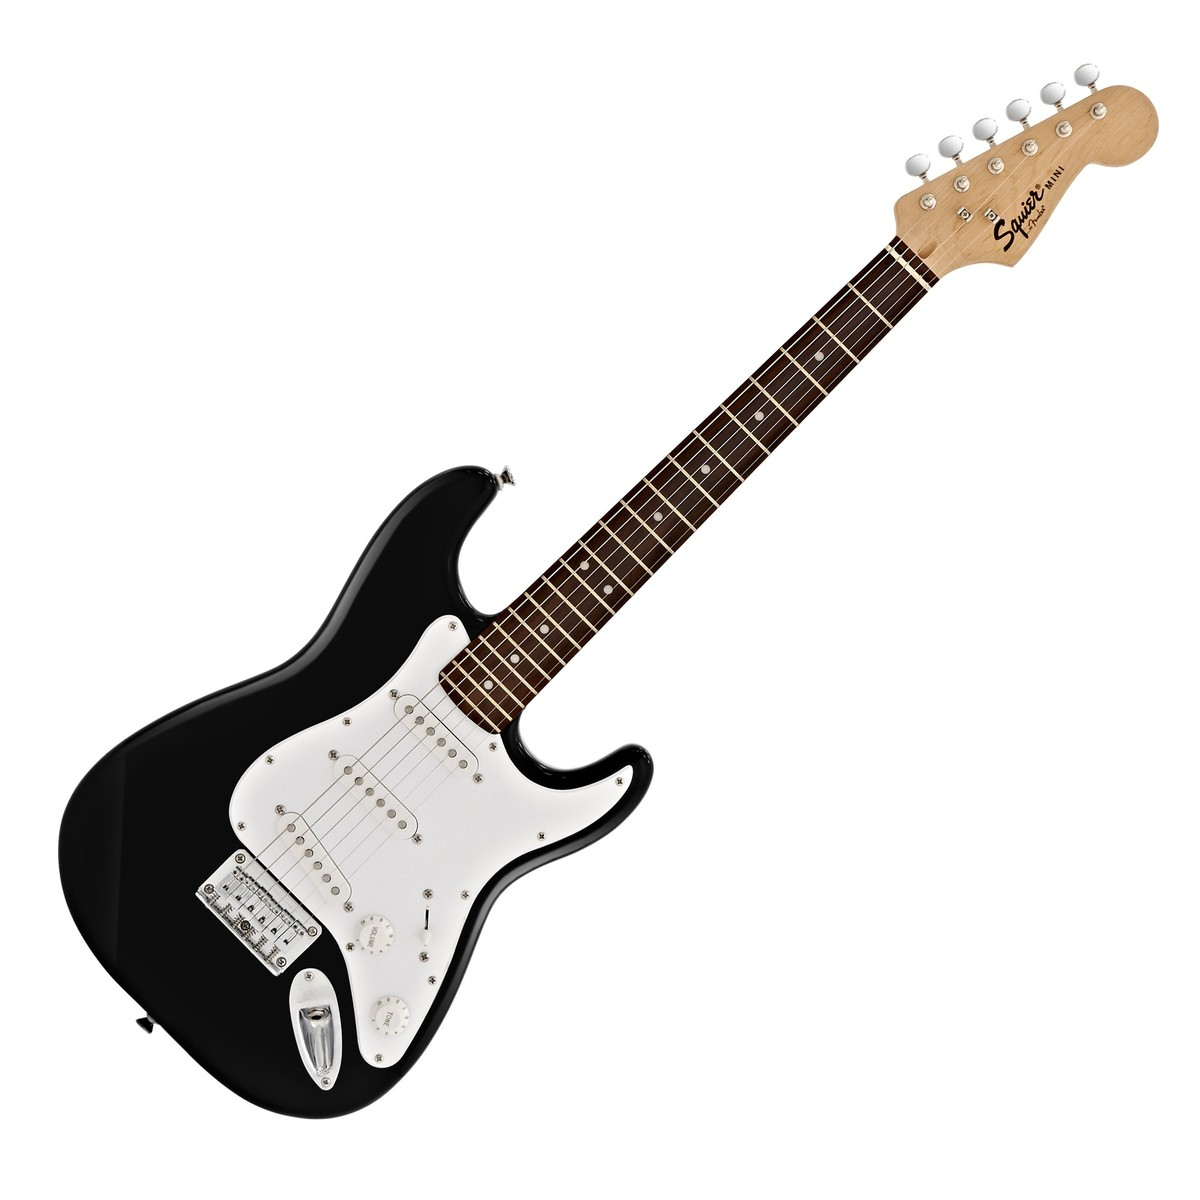 squier by fender mini stratocaster 3 4 size electric guitar black at. Black Bedroom Furniture Sets. Home Design Ideas